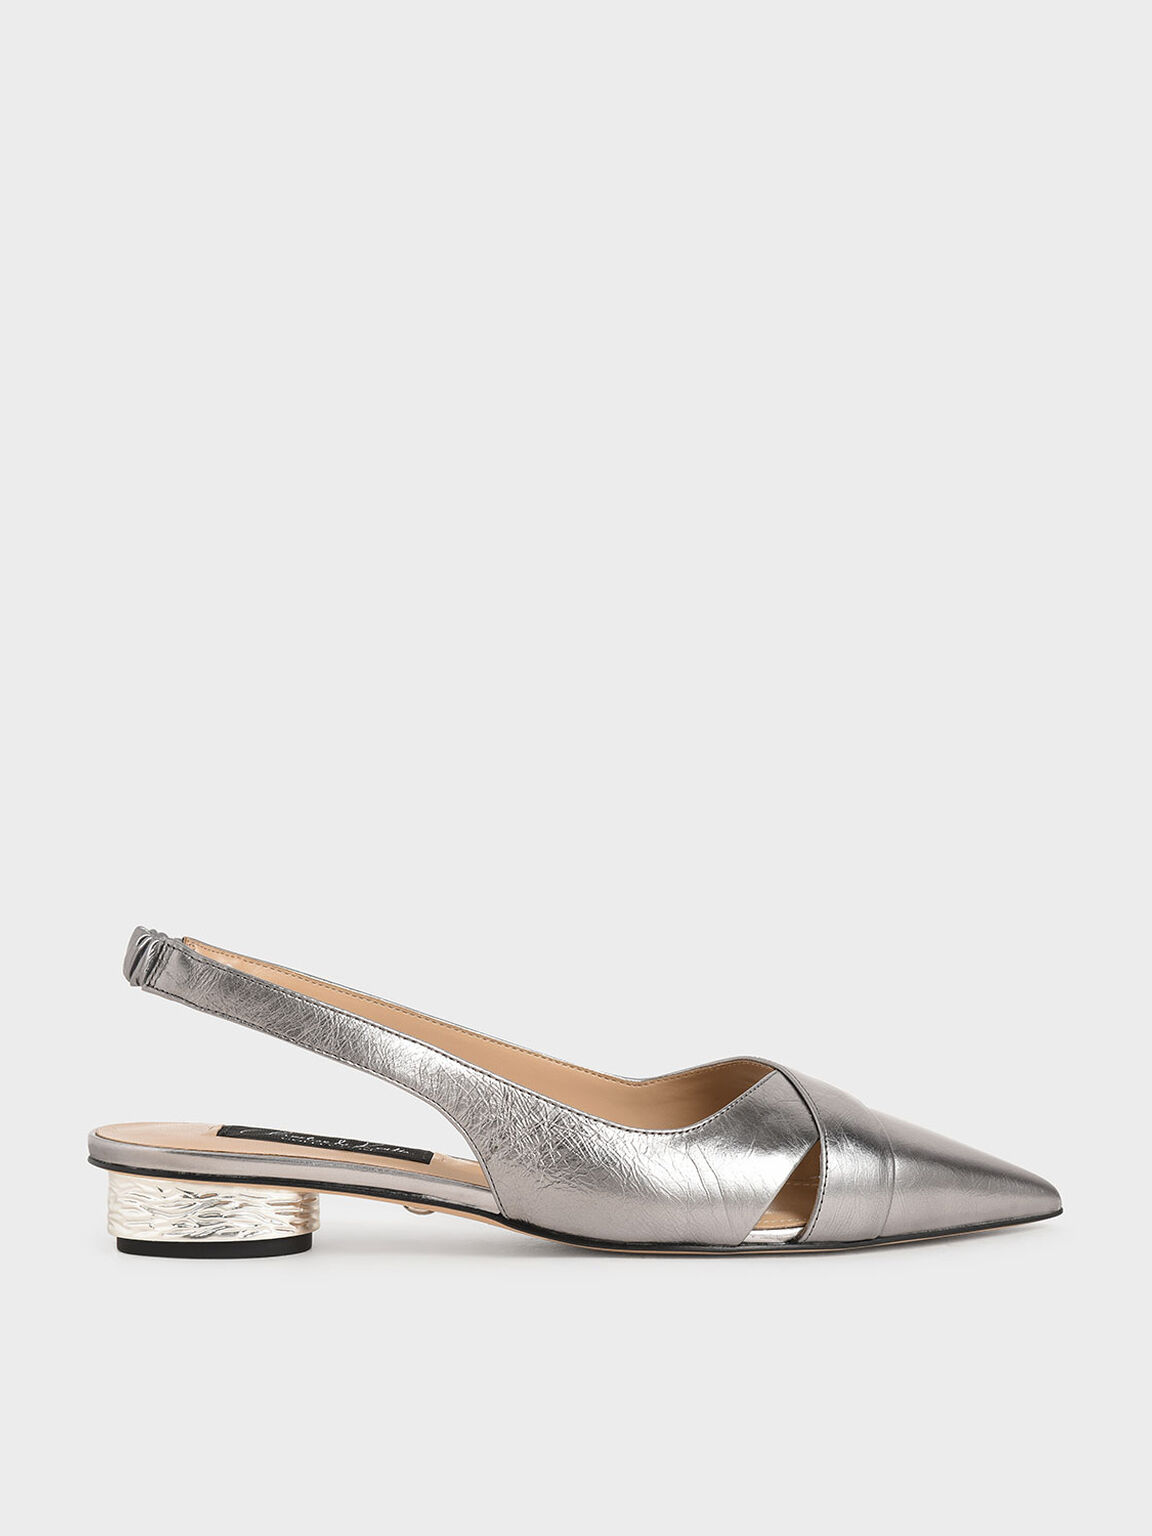 Leather Slingback Pumps, Pewter, hi-res